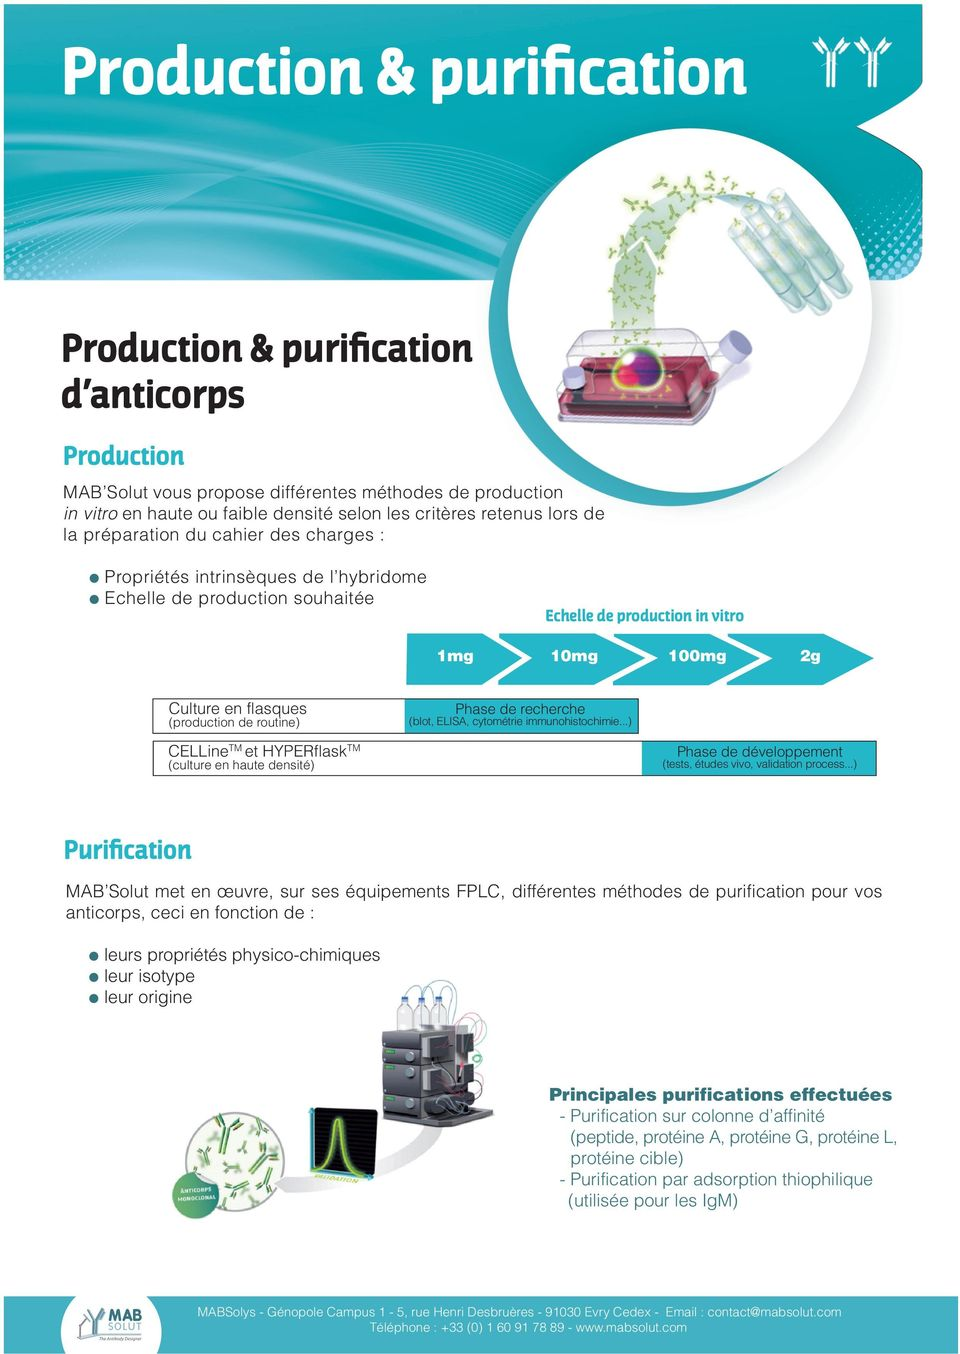 CELLineTM et HYPERflaskTM (culture en haute densité) 10mg 100mg 2g Phase de recherche (blot, ELISA, cytométrie immunohistochimie...) Phase de développement (tests, études vivo, validation process.